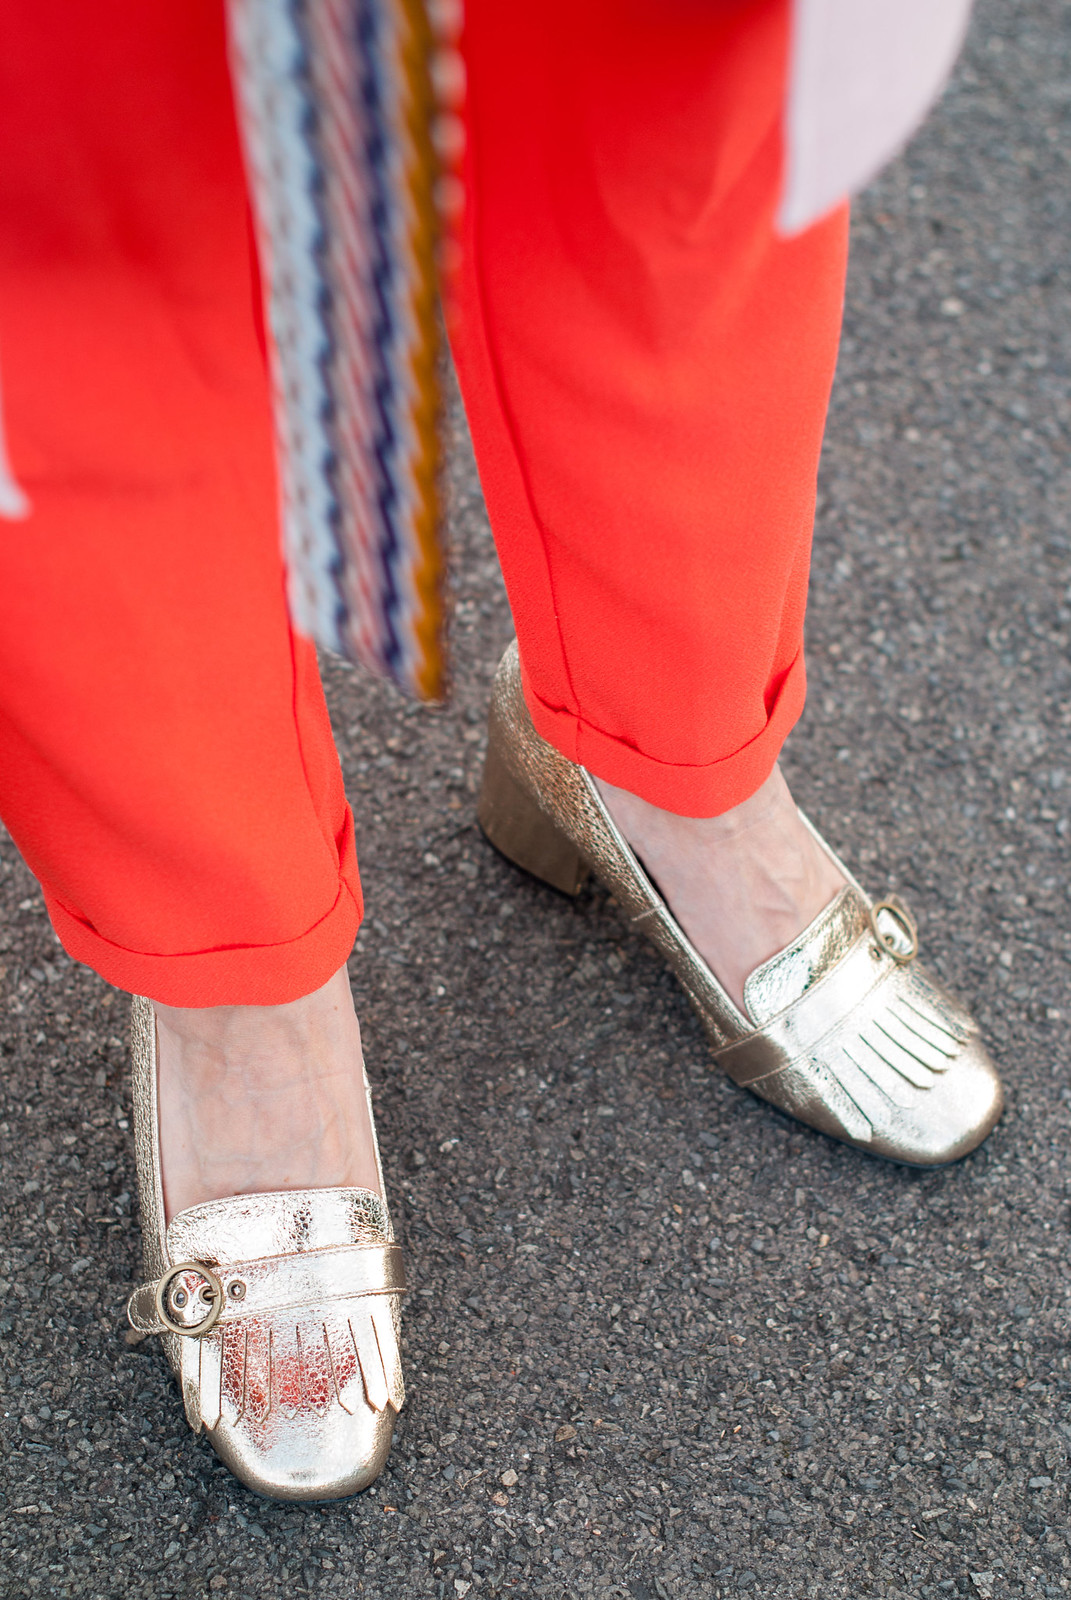 Ways to wear an orange jumpsuit: With a longline pink coatigan, metallic gold block heel loafers, 70s style skinny scarf | Not Dressed As Lamb, over 40 style